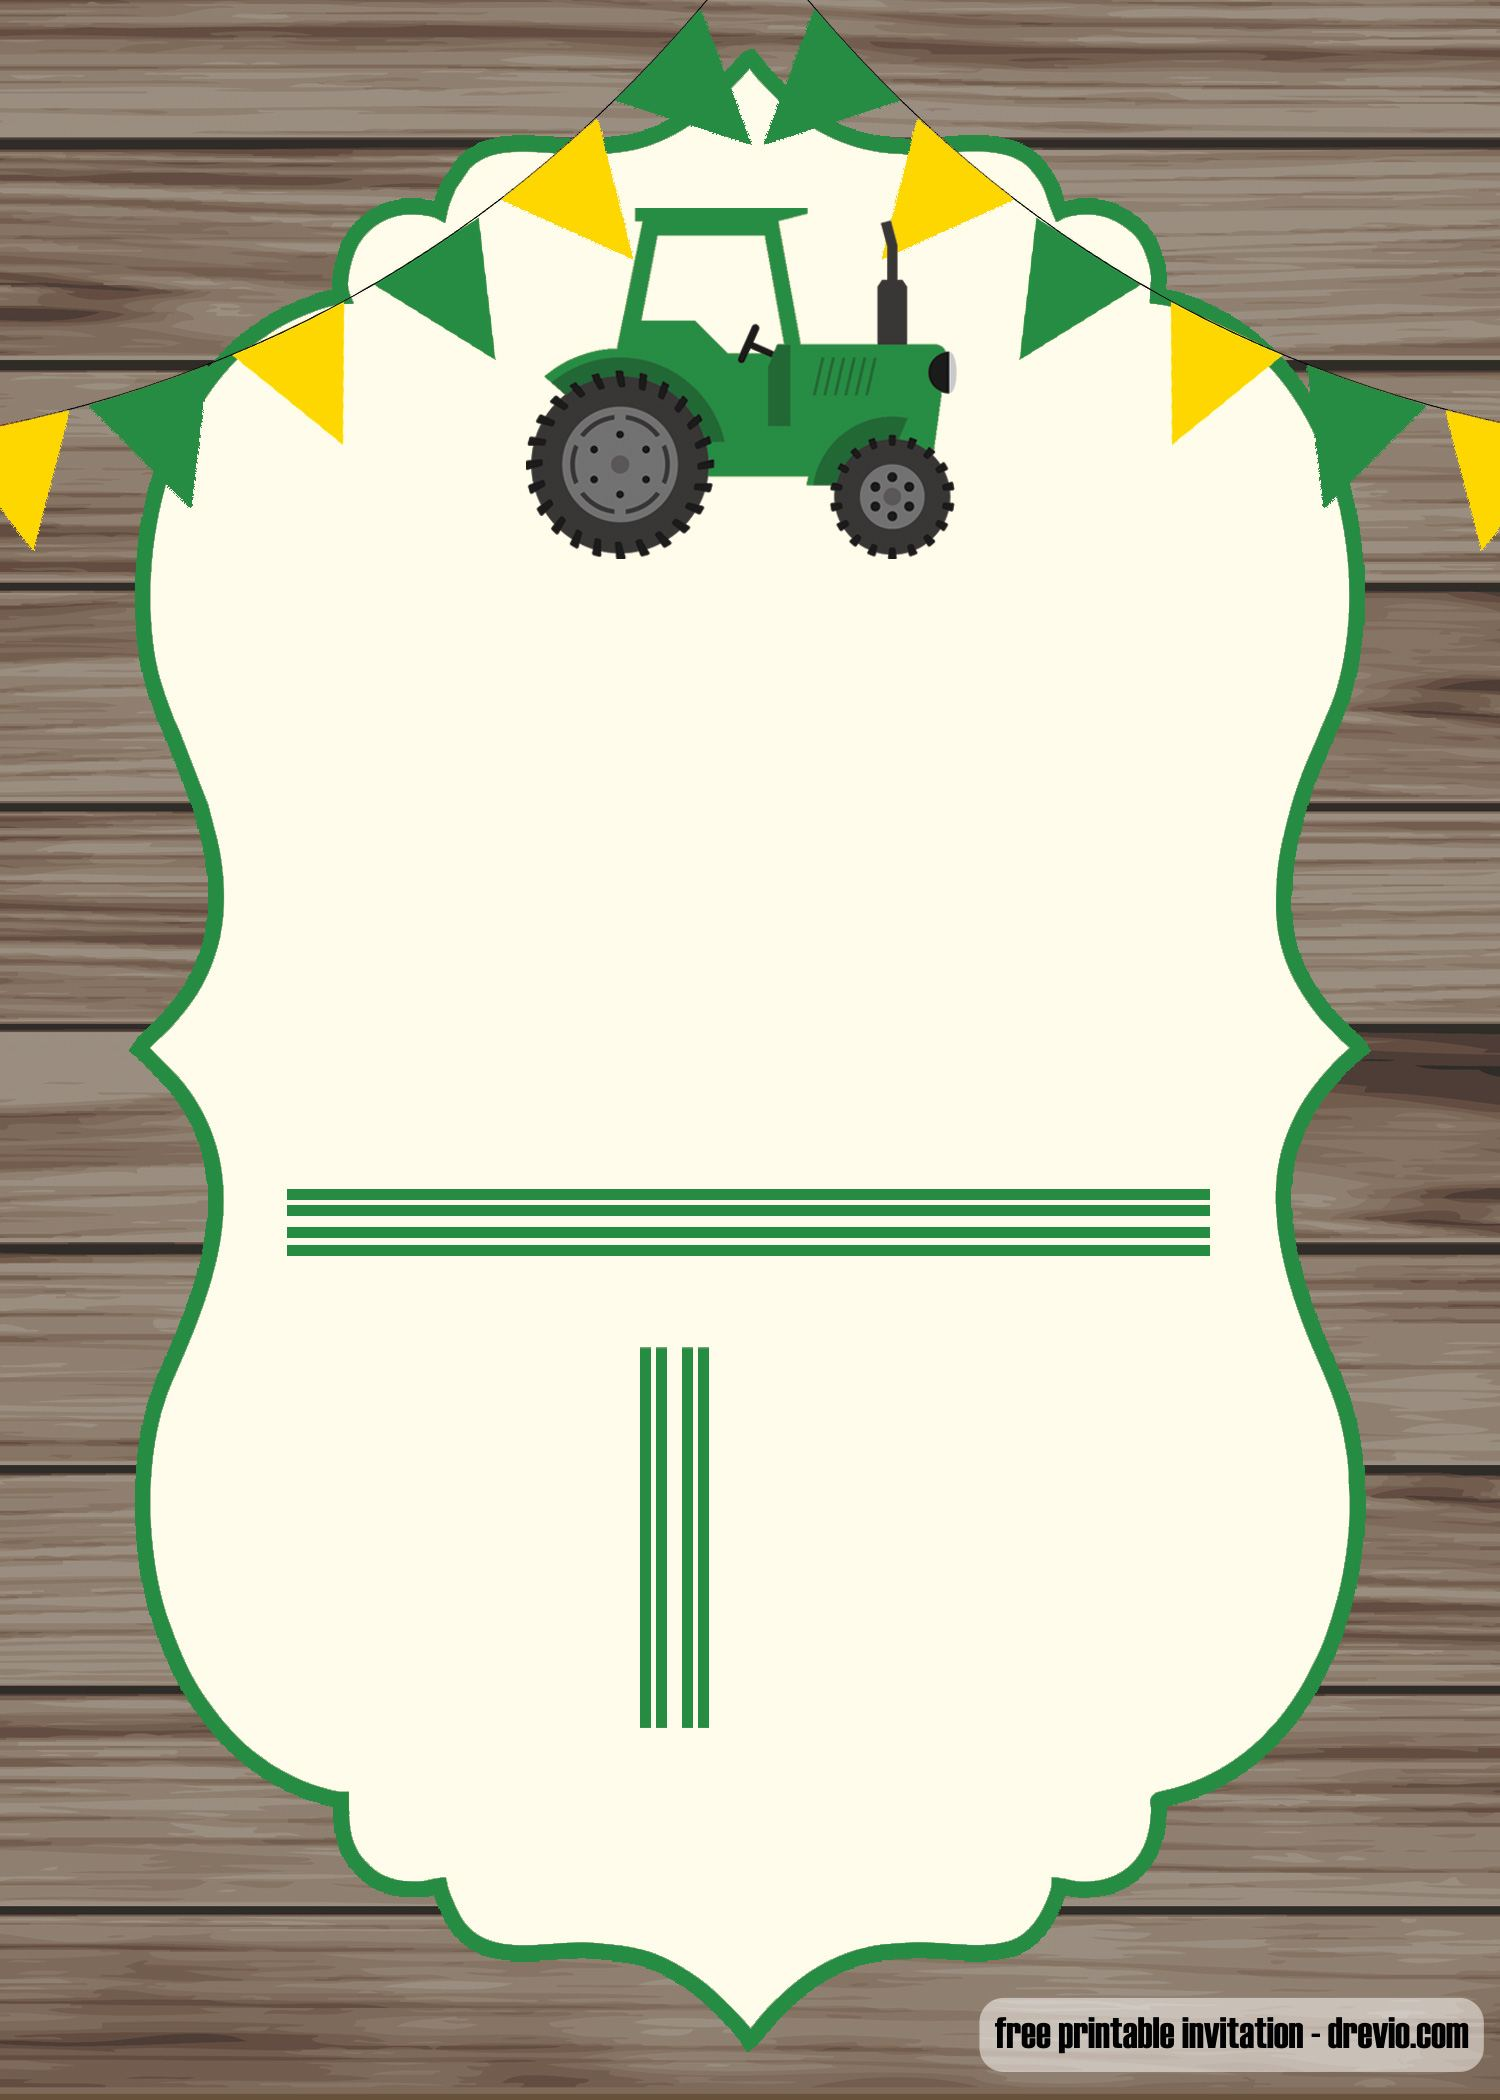 FREE Printable John Deere Invitation Template FREE Invitation Templates Drevio